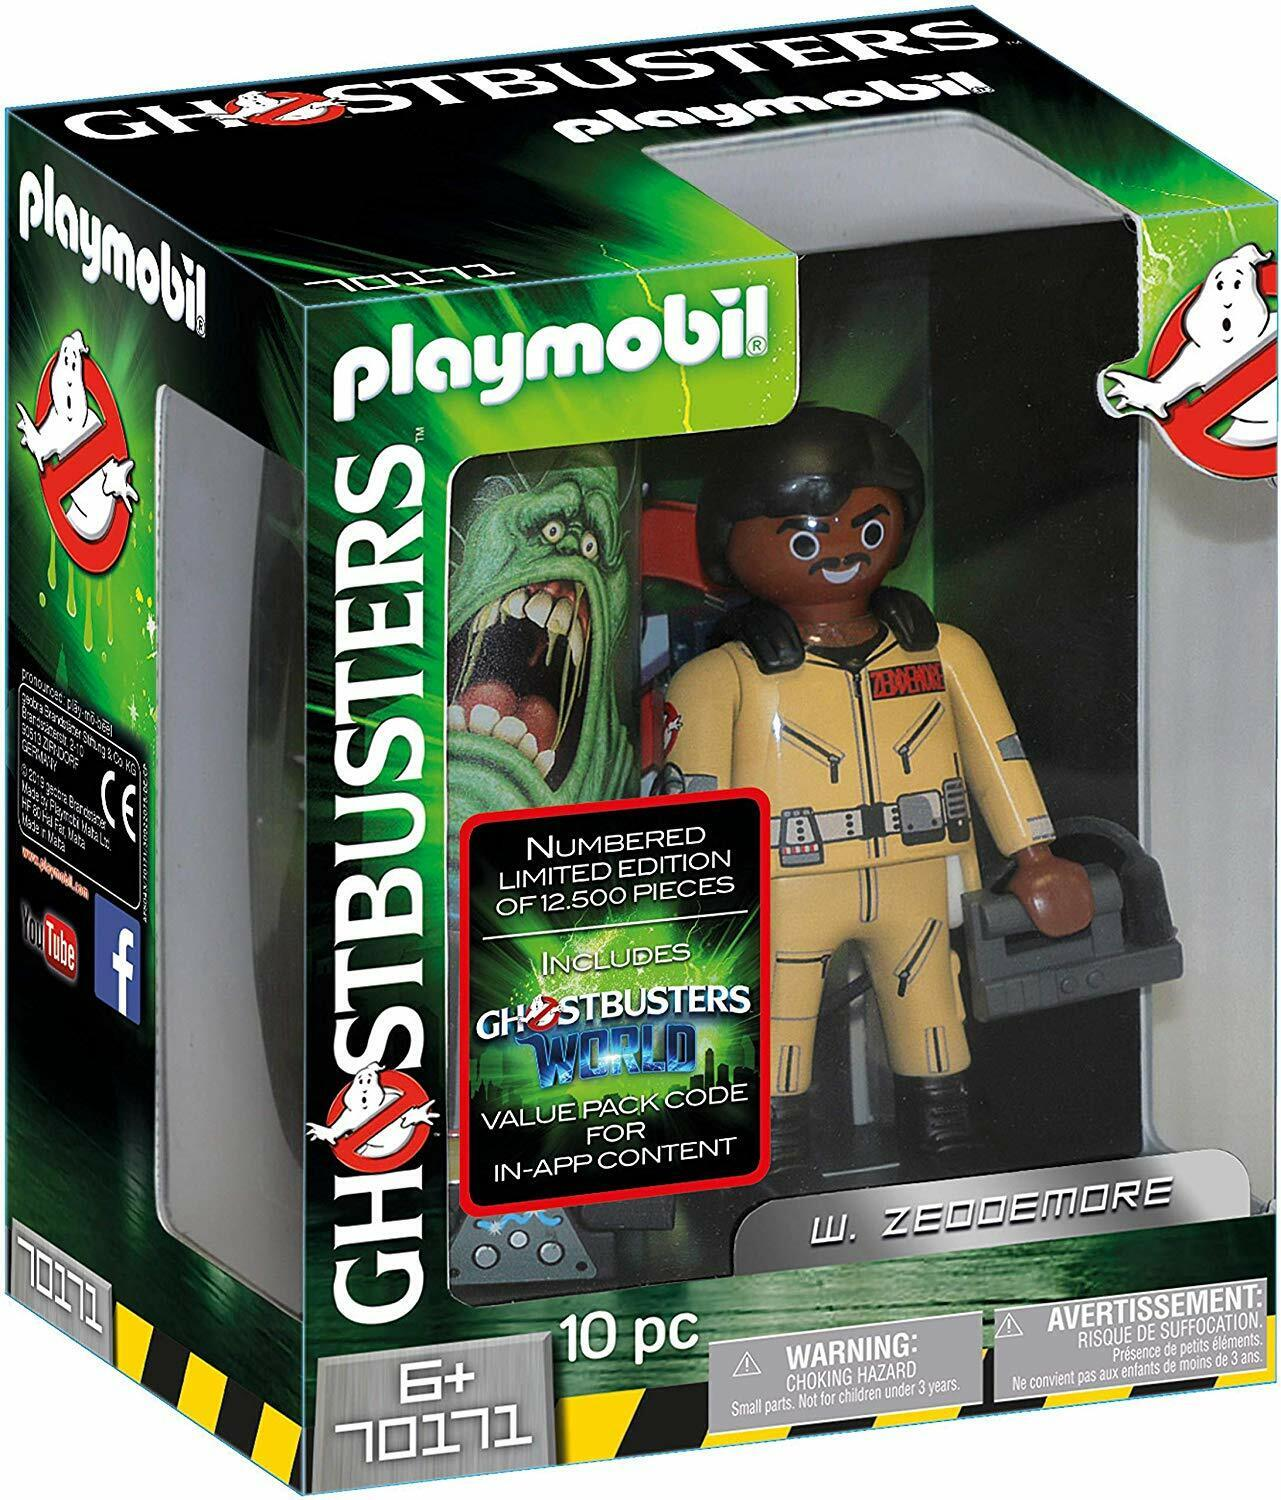 Playmobil Ghostbusters 70171. Figure Collectable W.Zeddemore. 15 cm 6 Years